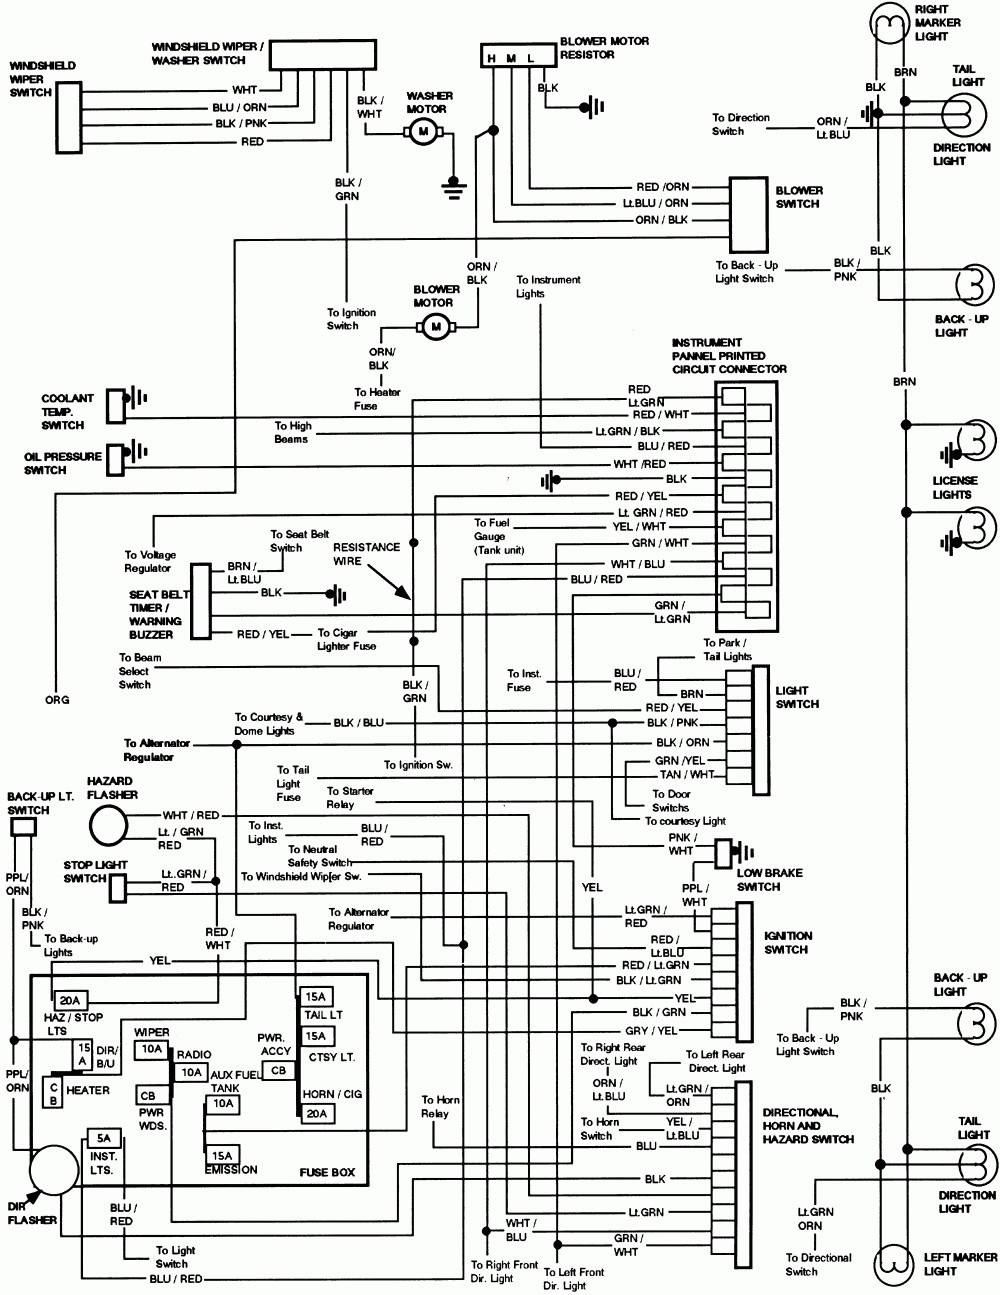 medium resolution of 1983 ford f 350 wiring harness free download wiring diagram load stater solenoid wiring diagram f 350 super duty